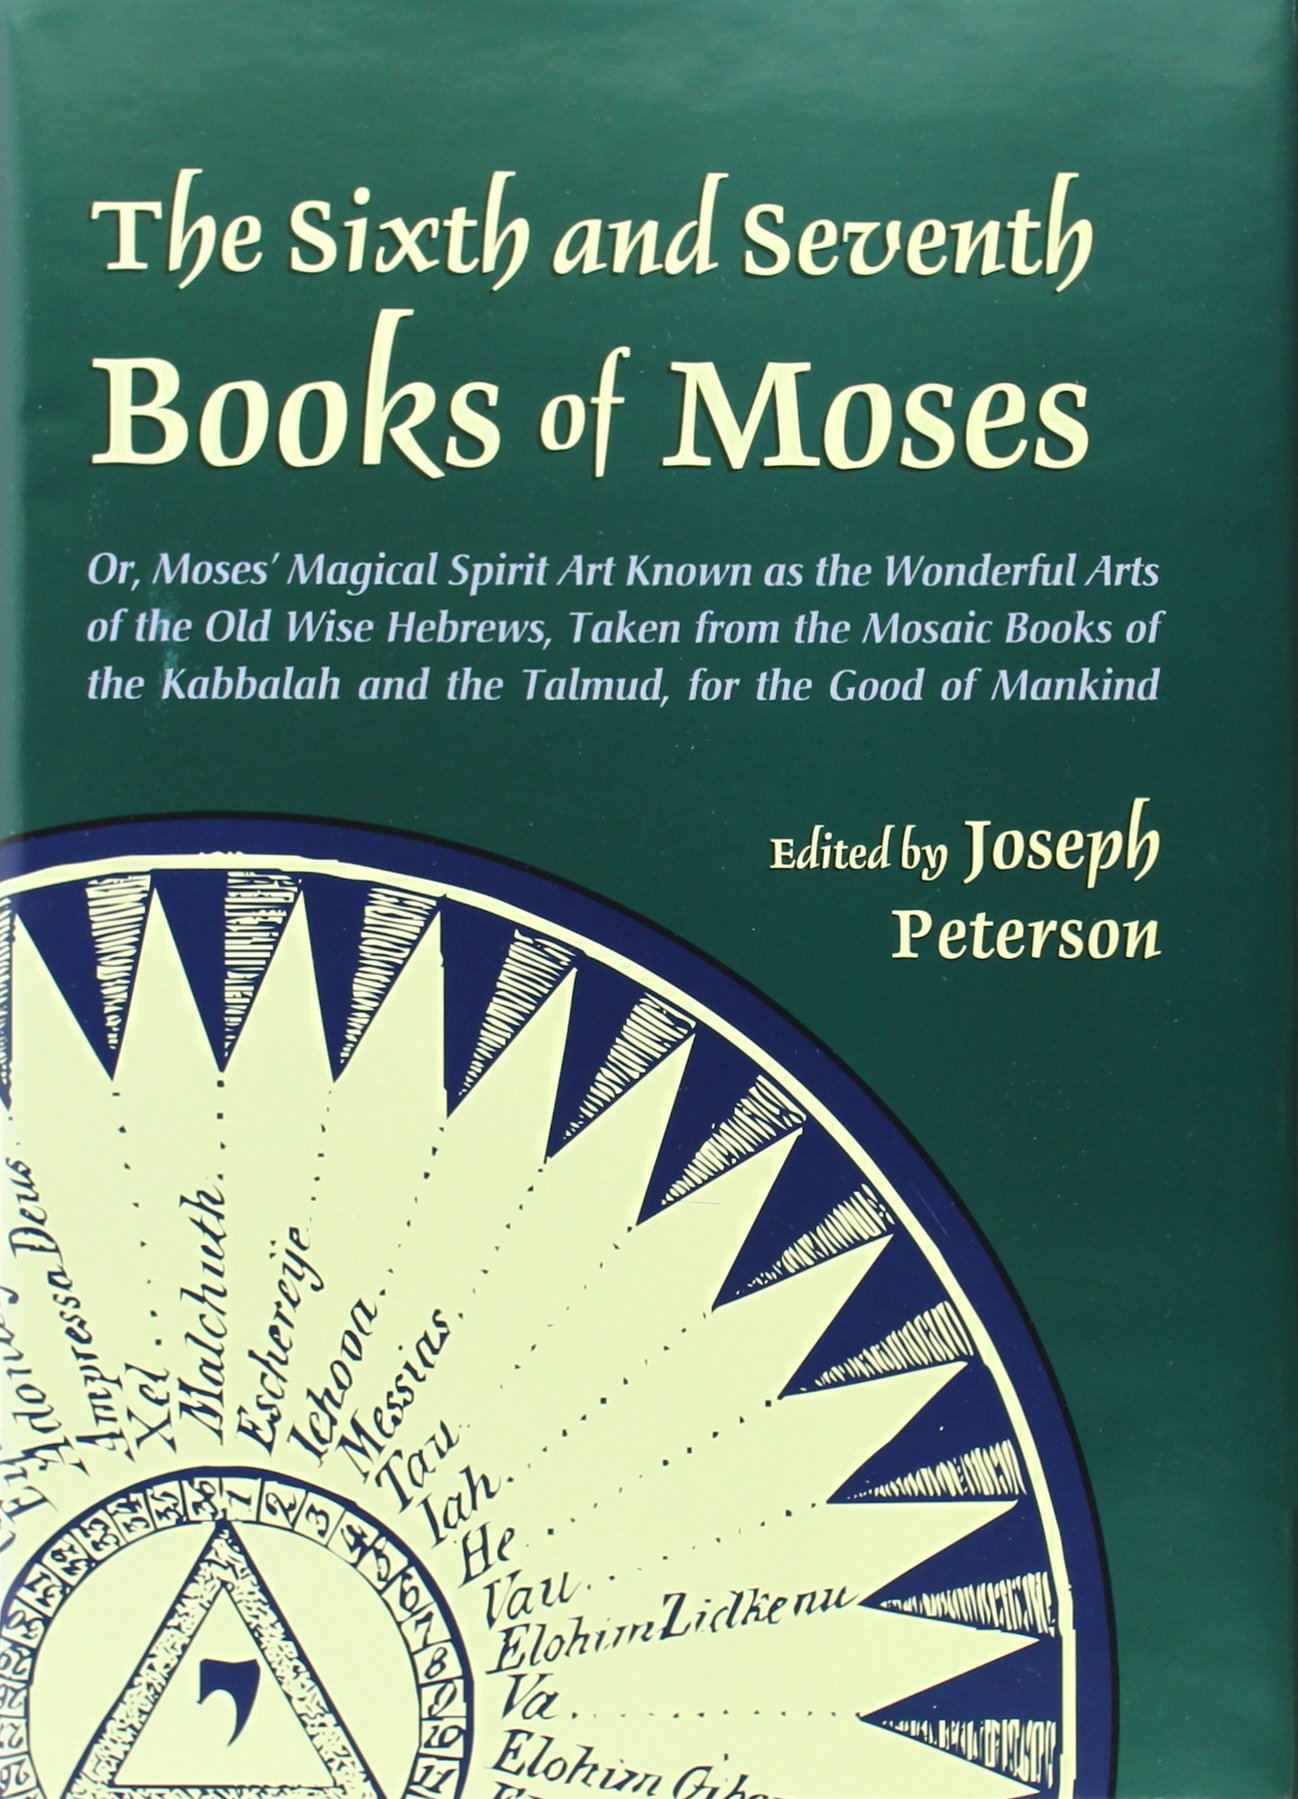 The sixth and seventh books of moses: joseph peterson.